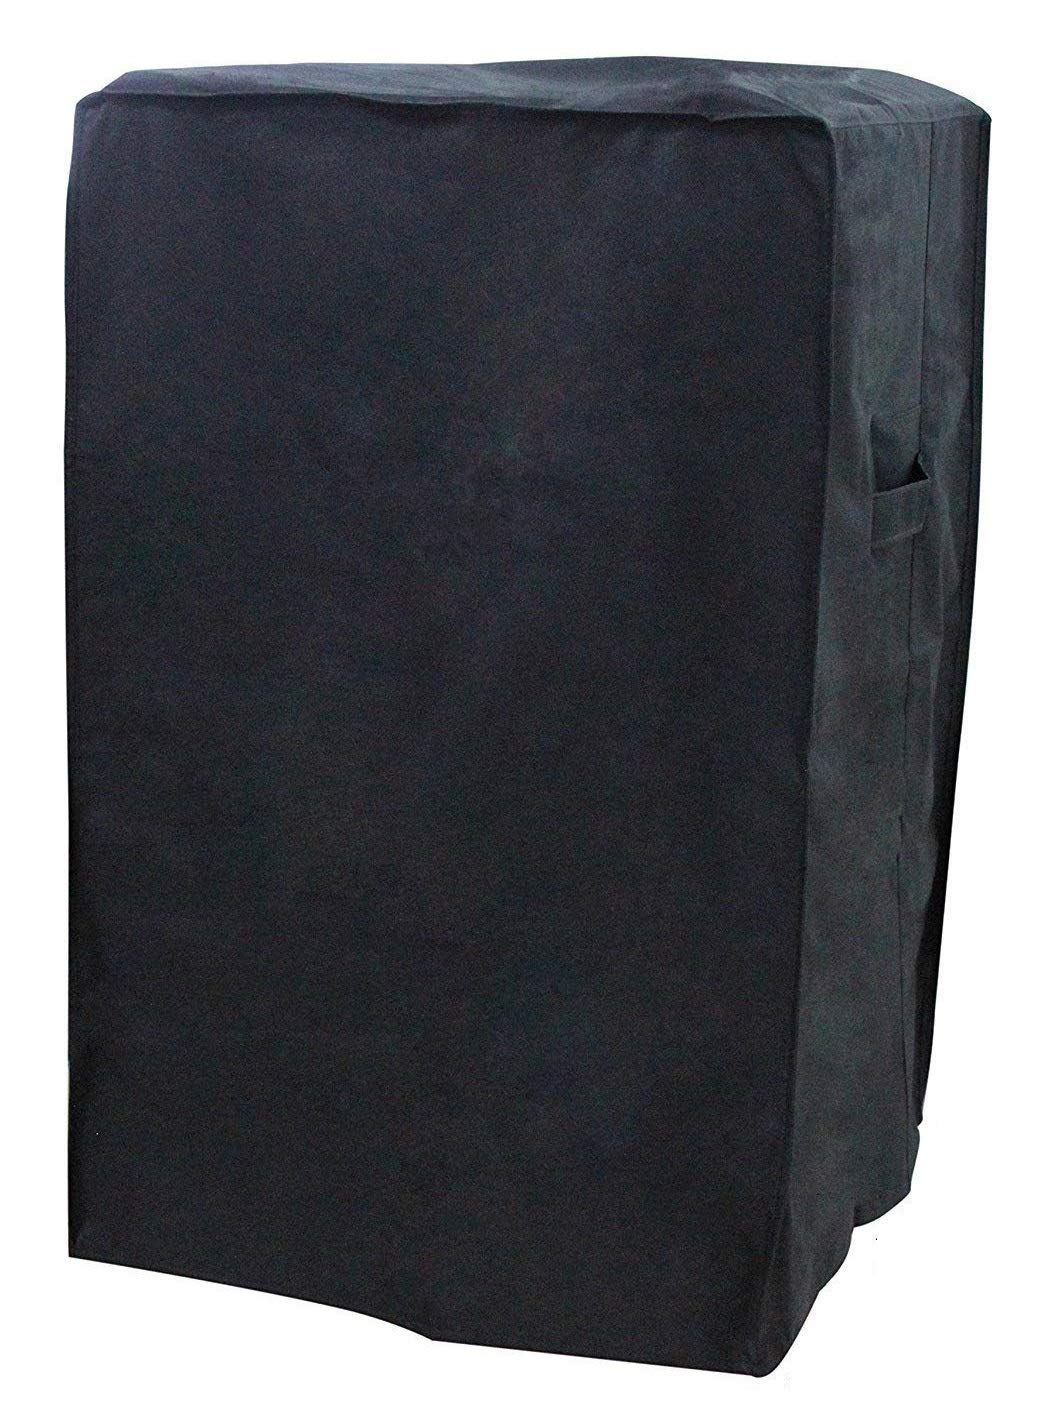 """Hongso ES30 30-Inch Electric Smoker Cover for 30"""" Masterbuilt Electric Smoker and Others, Black"""